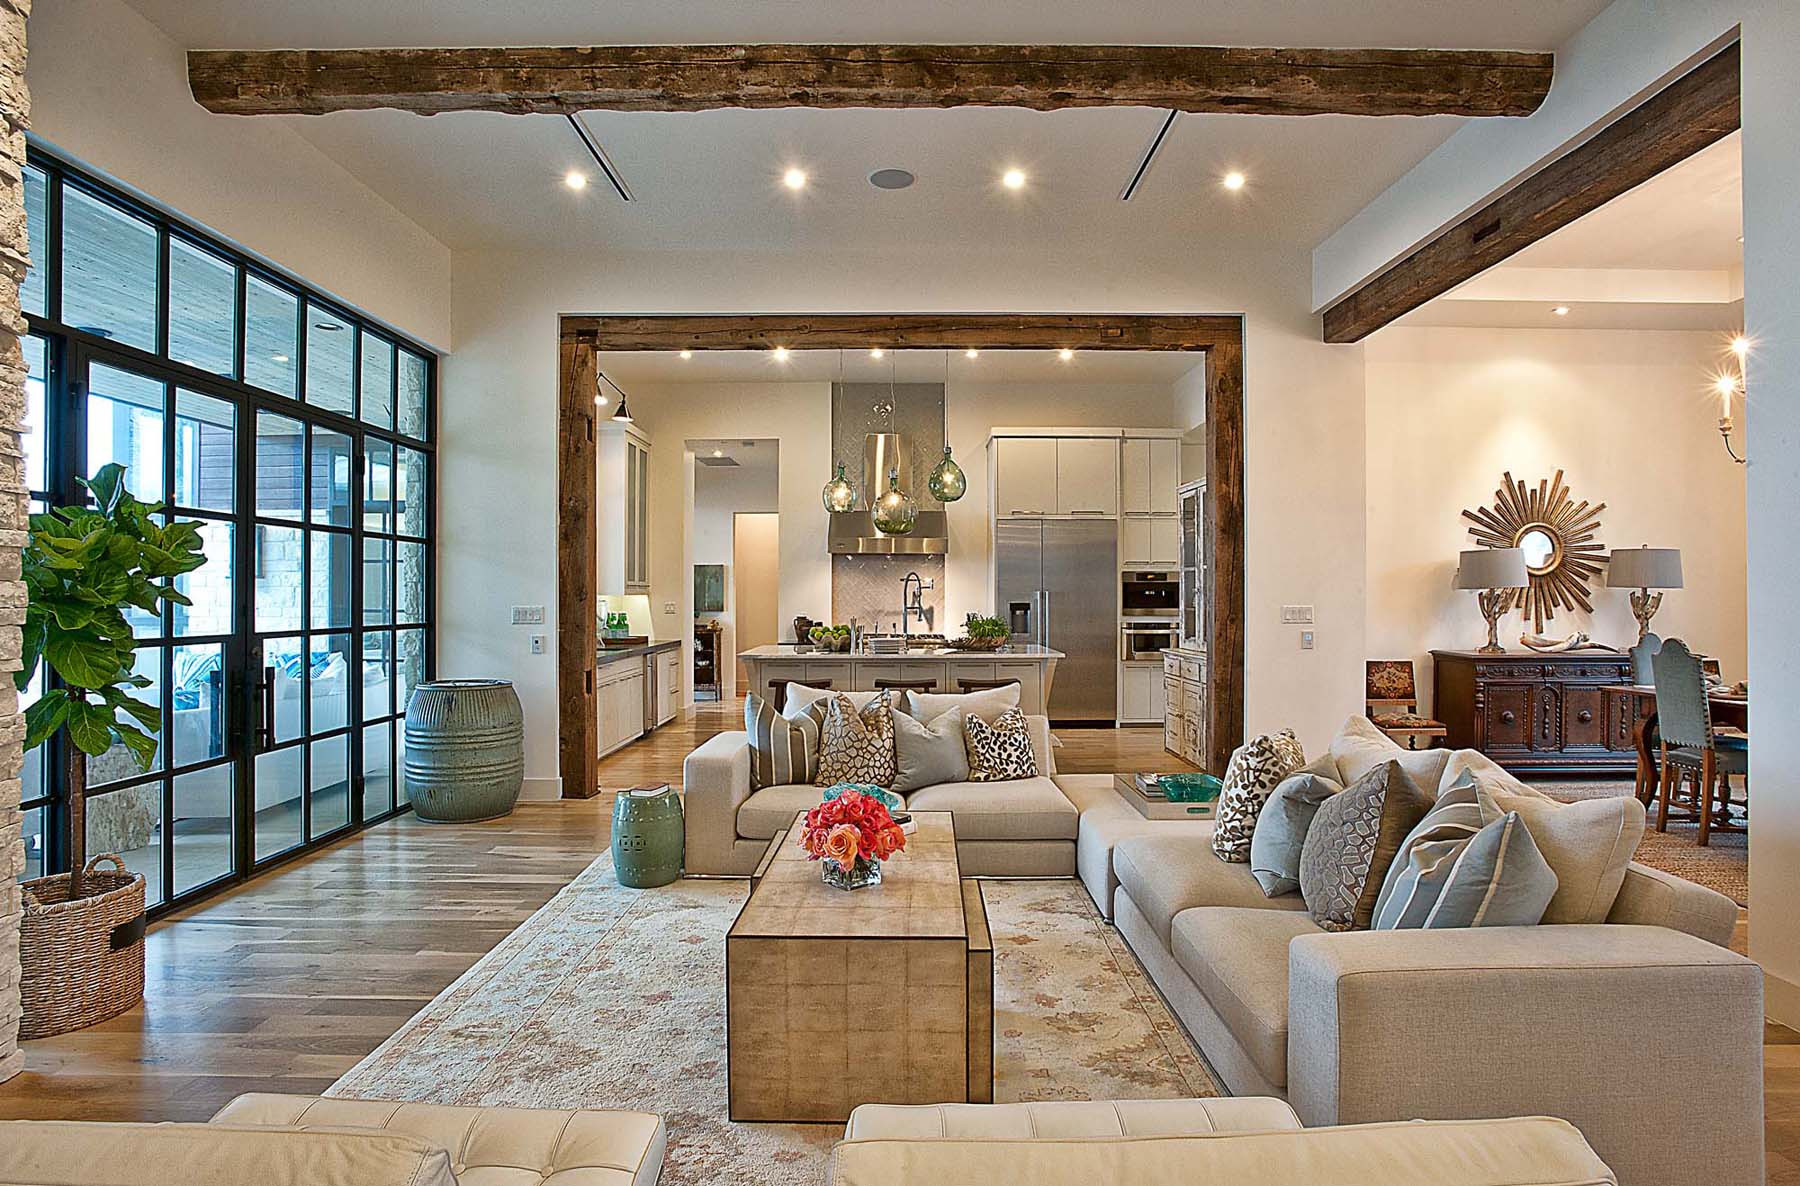 A Contemporary Home With Rustic Elements Connects To Its Environment   iDesignArch   Interior ...